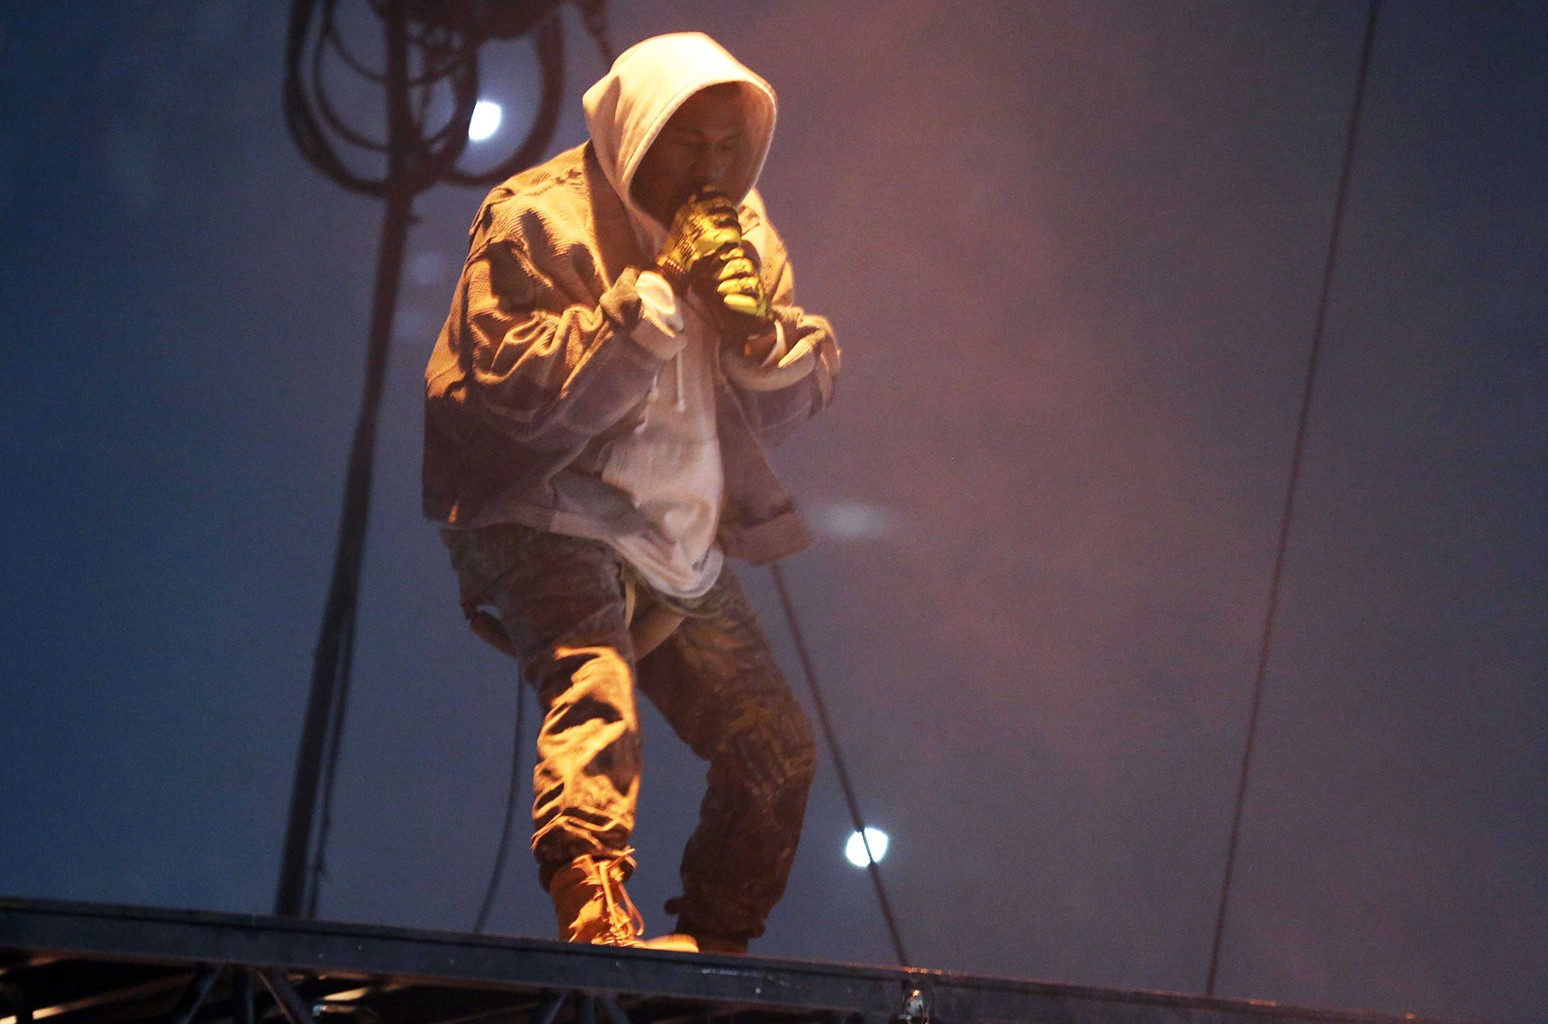 Kanye West performs during The Saint Pablo Tour